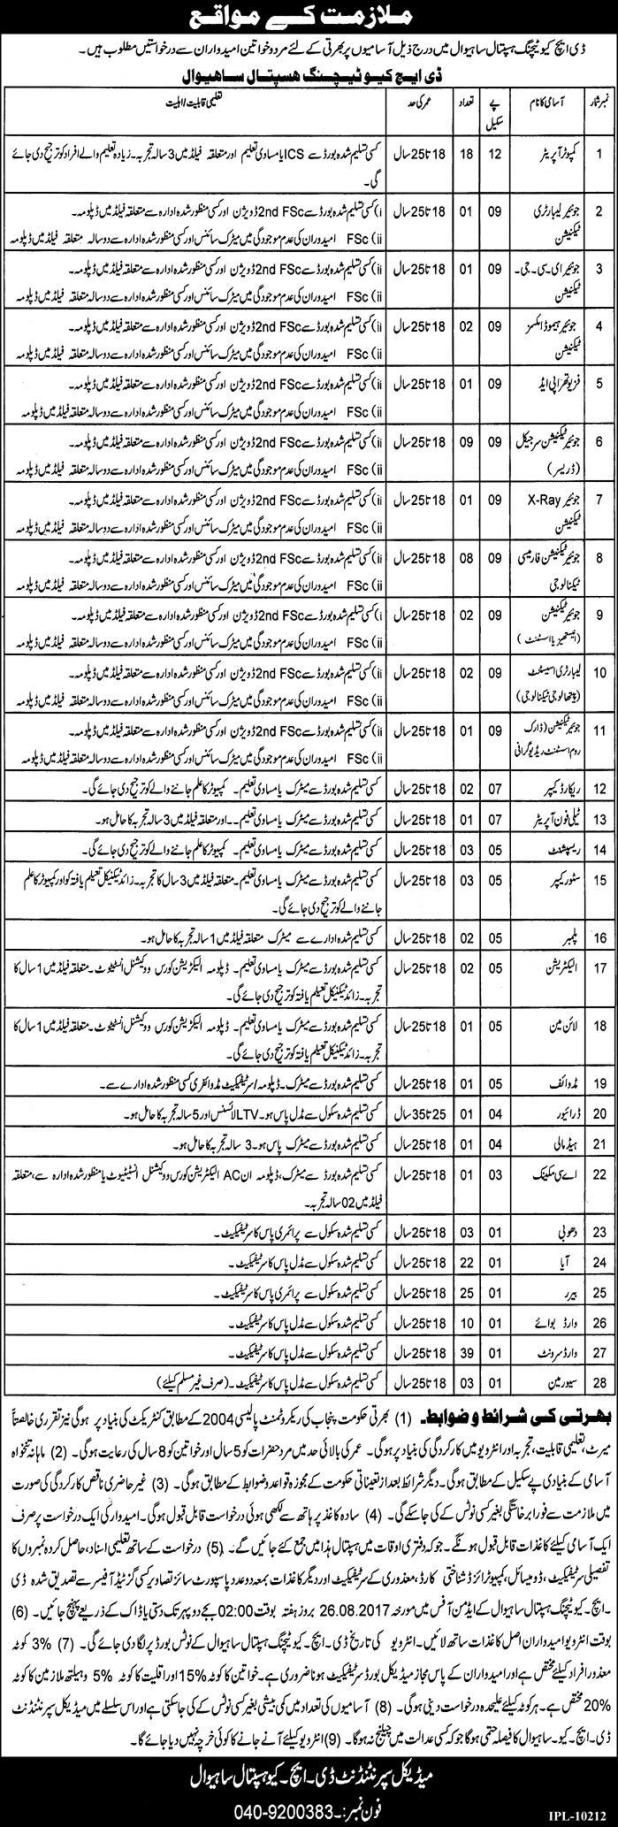 DHQ Teaching Hospital Sahiwal Jobs 2017 For Male and Female Application Form Last Date Eligibility Criteria